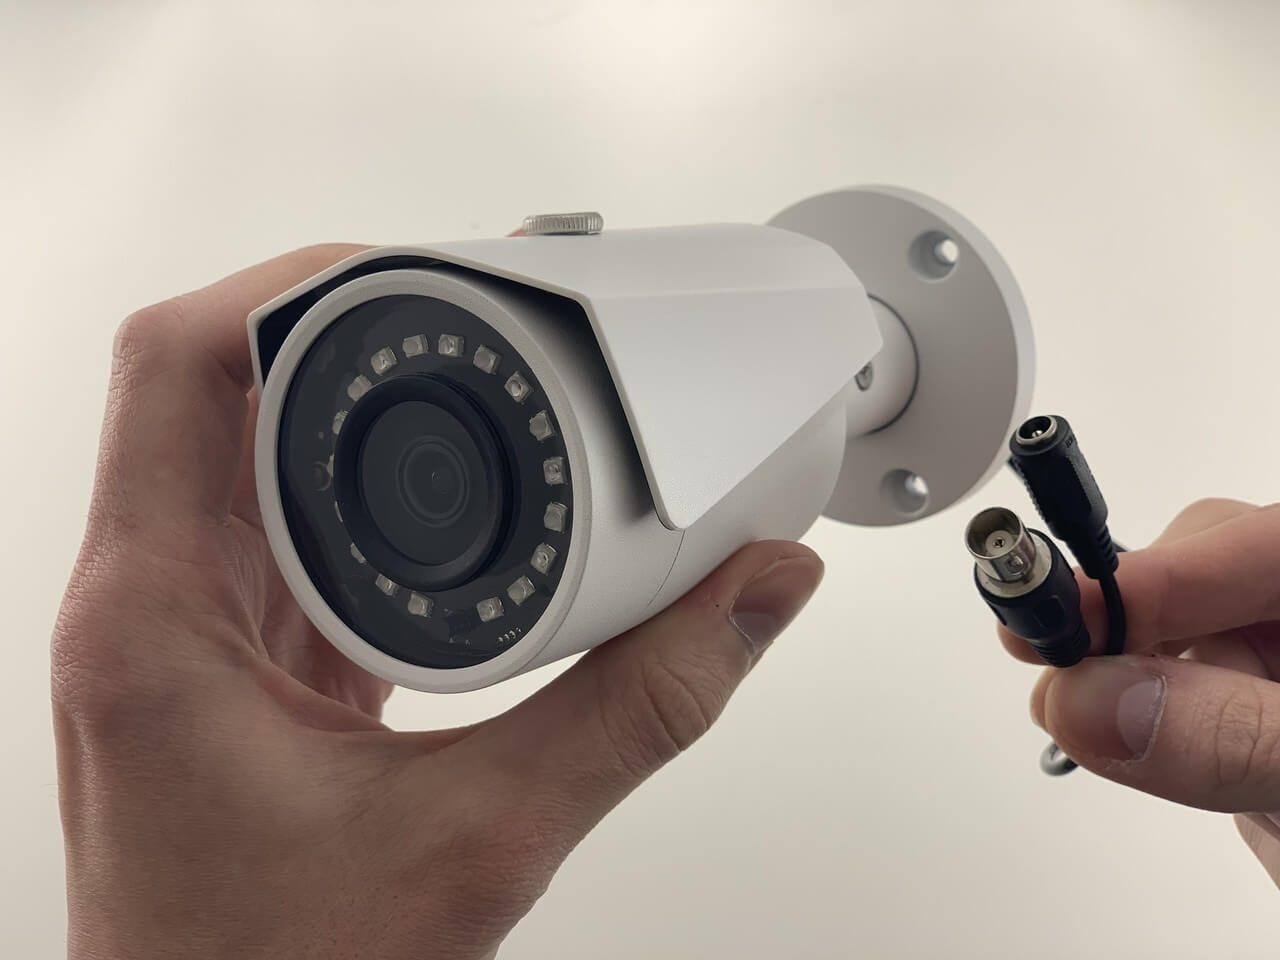 HD Over Coax 8 Megapixel 4K Bullet Security Camera with 100 Foot Night Vision (White)